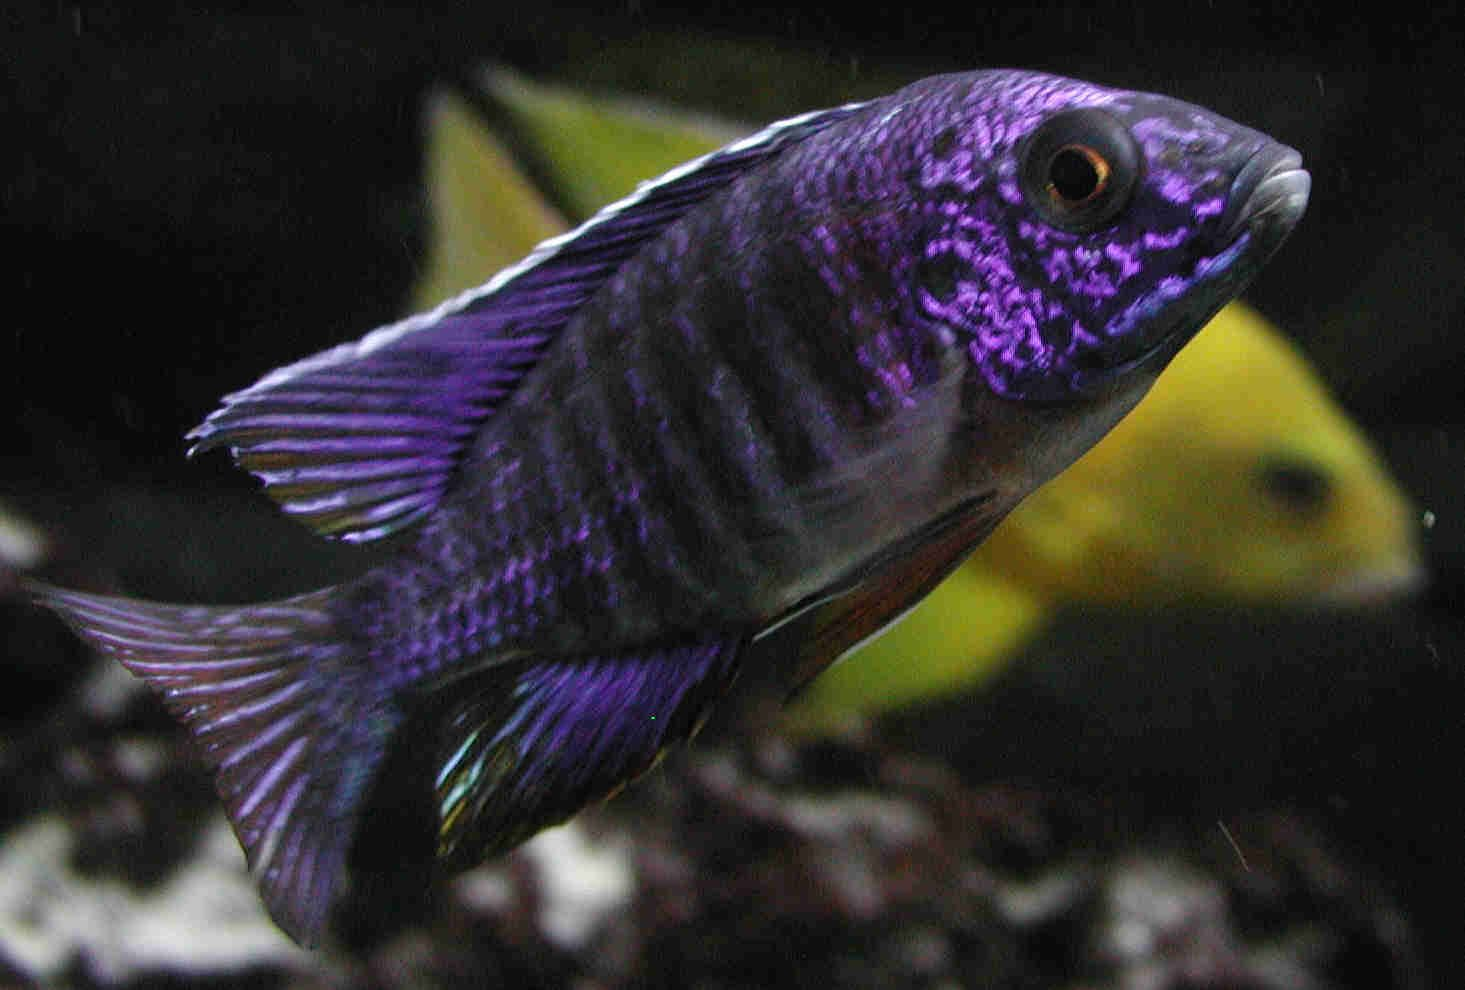 oooh pretty african cichlid i need one to go with my